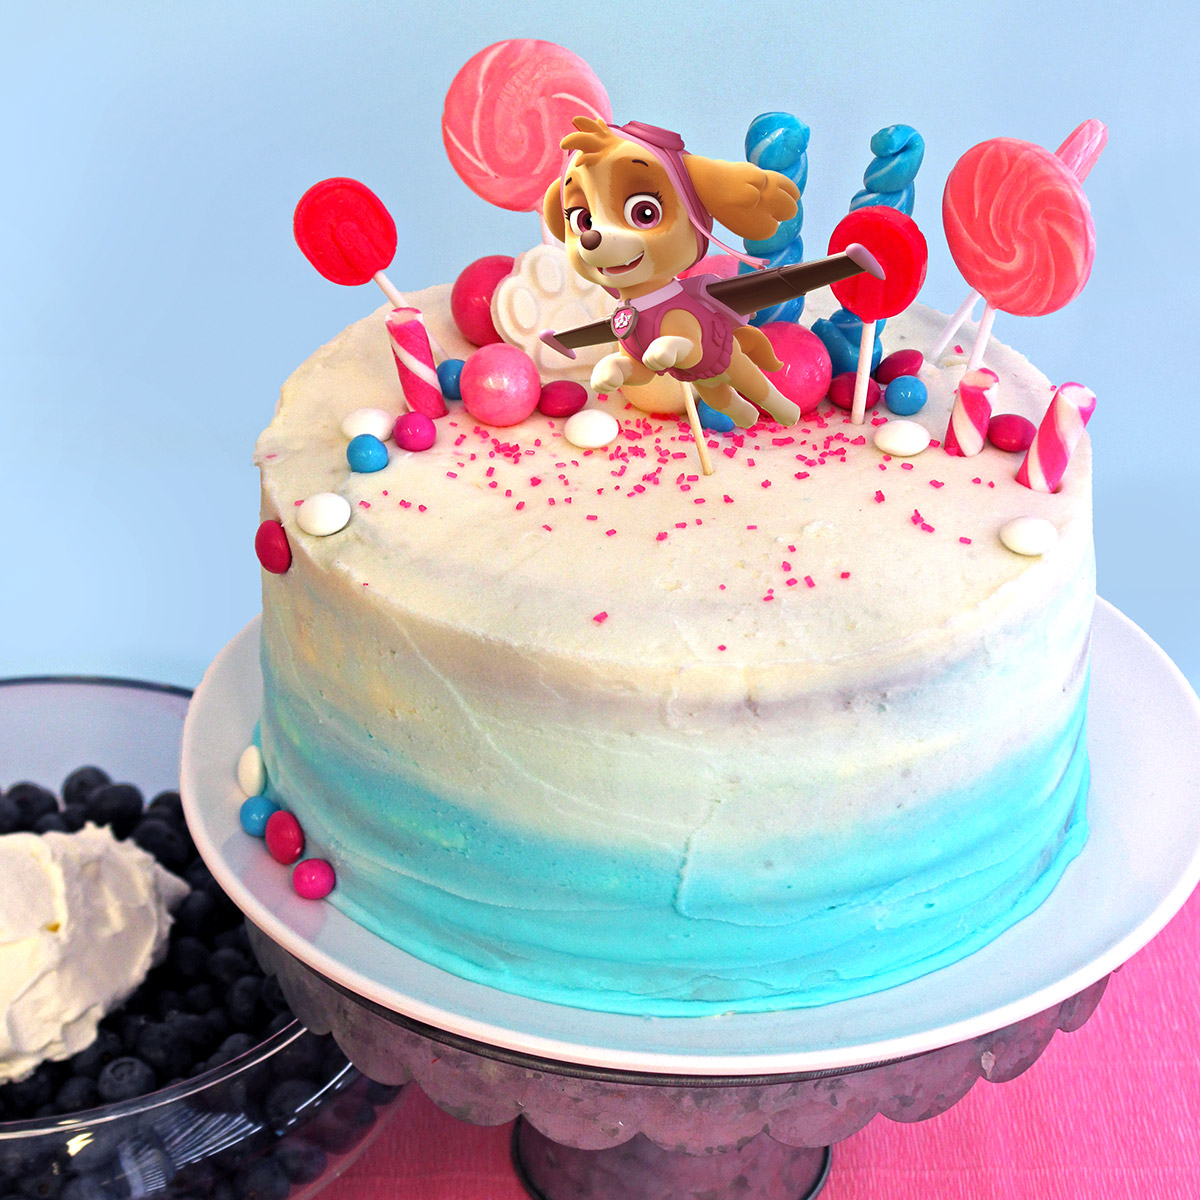 PAW Patrol Skye Birthday Party Cake Topper